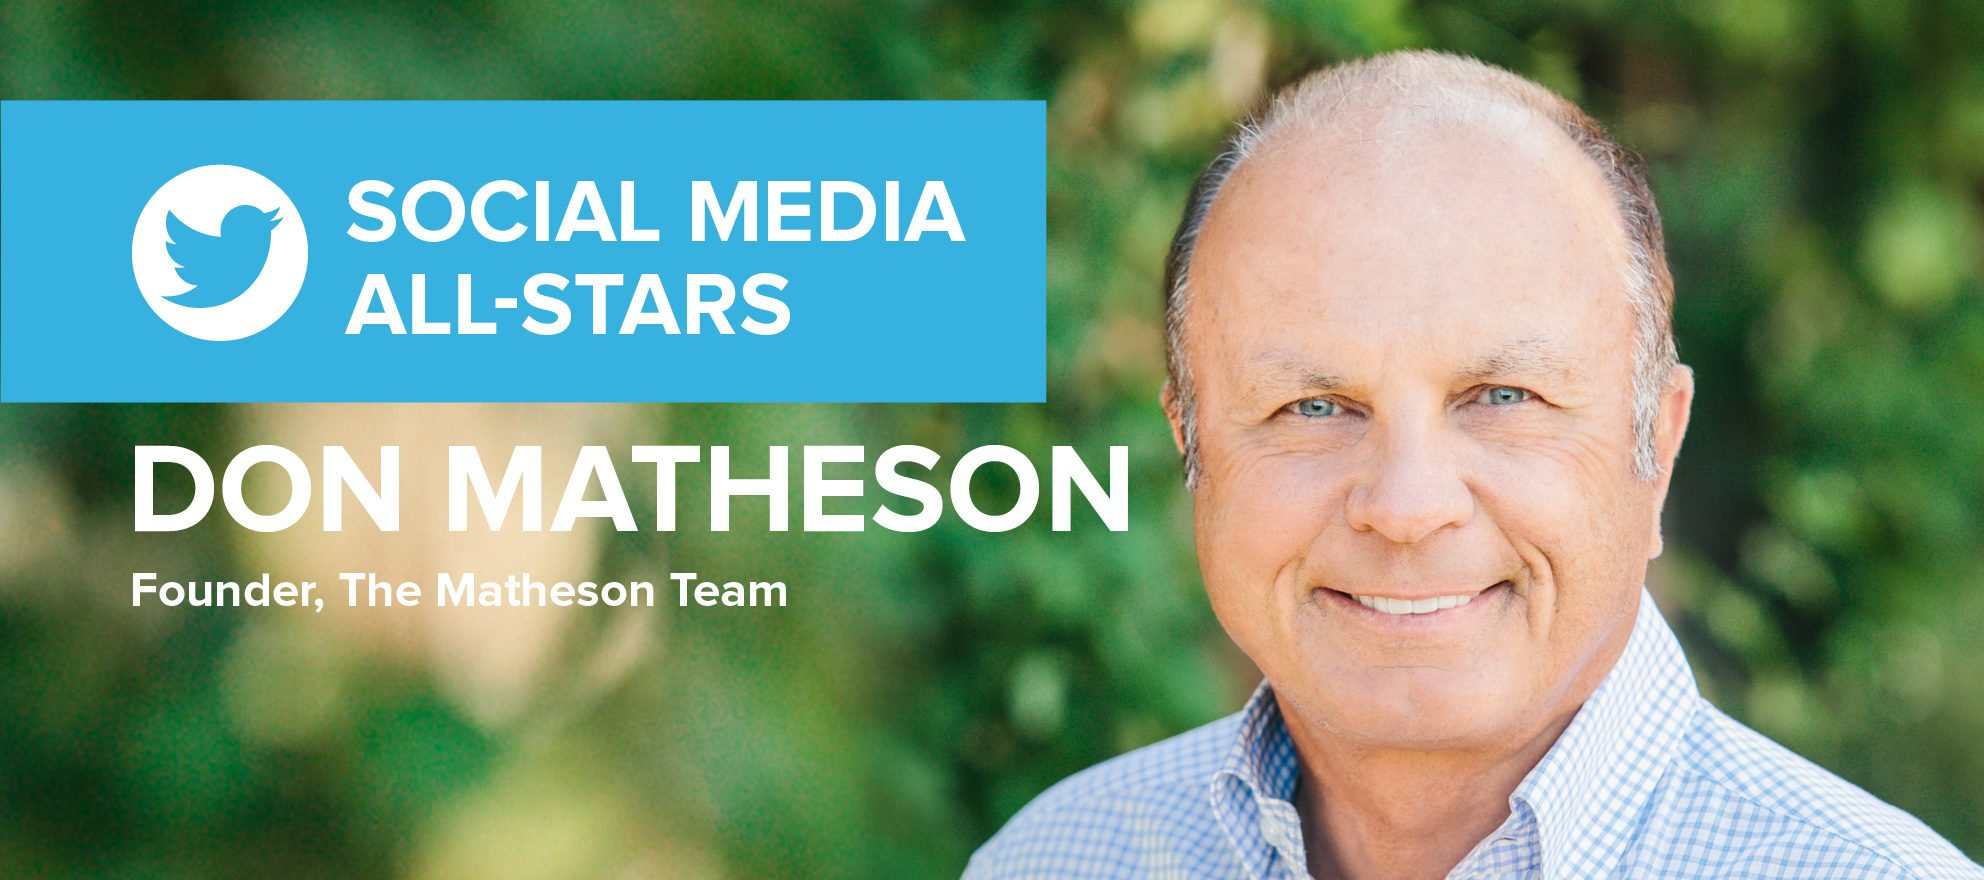 Don Matheson: 'If you can make your business social, it's way more fun'